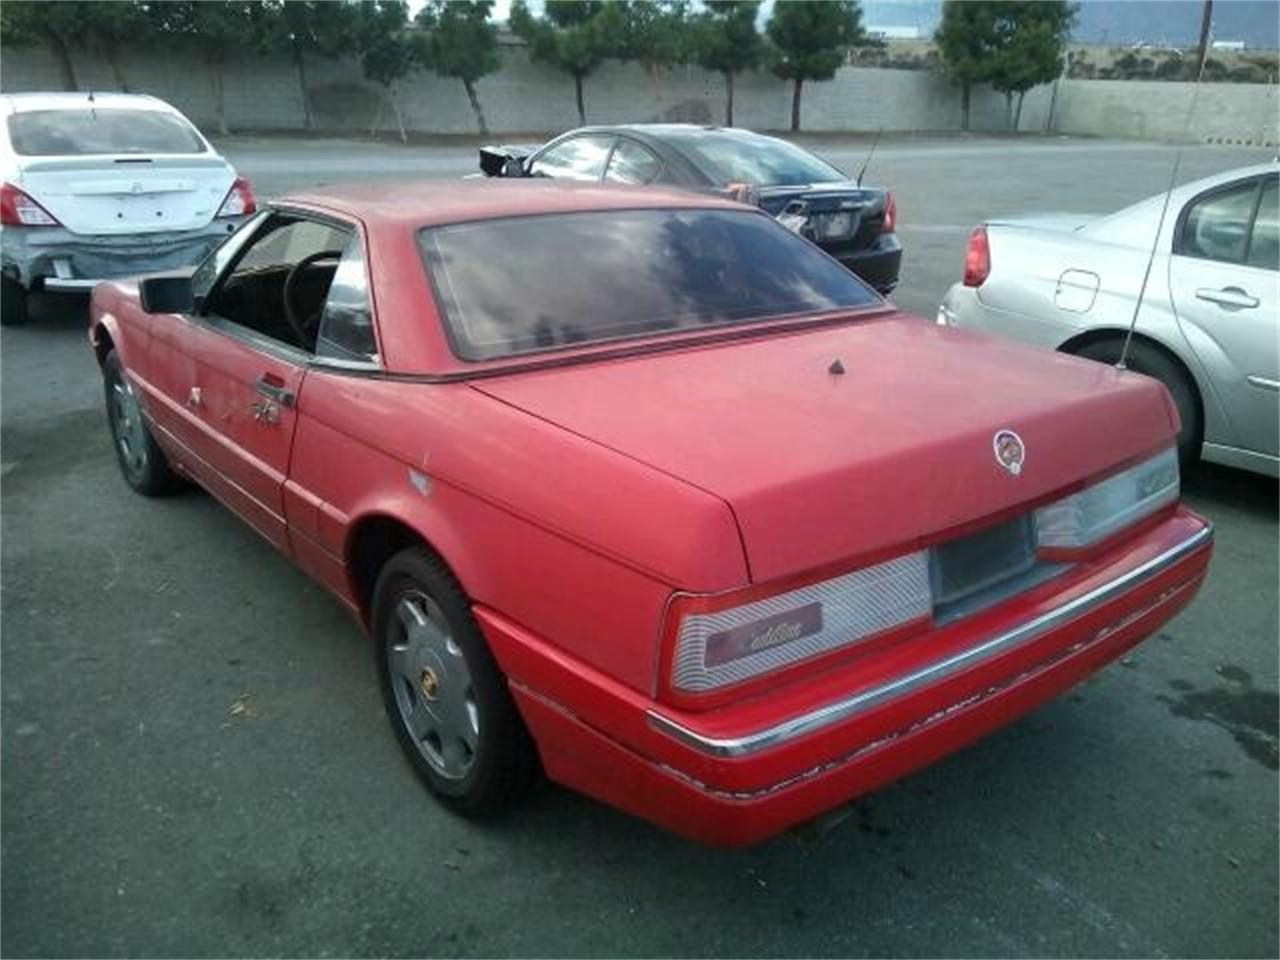 1989 Cadillac Allante for sale in Pahrump, NV – photo 2